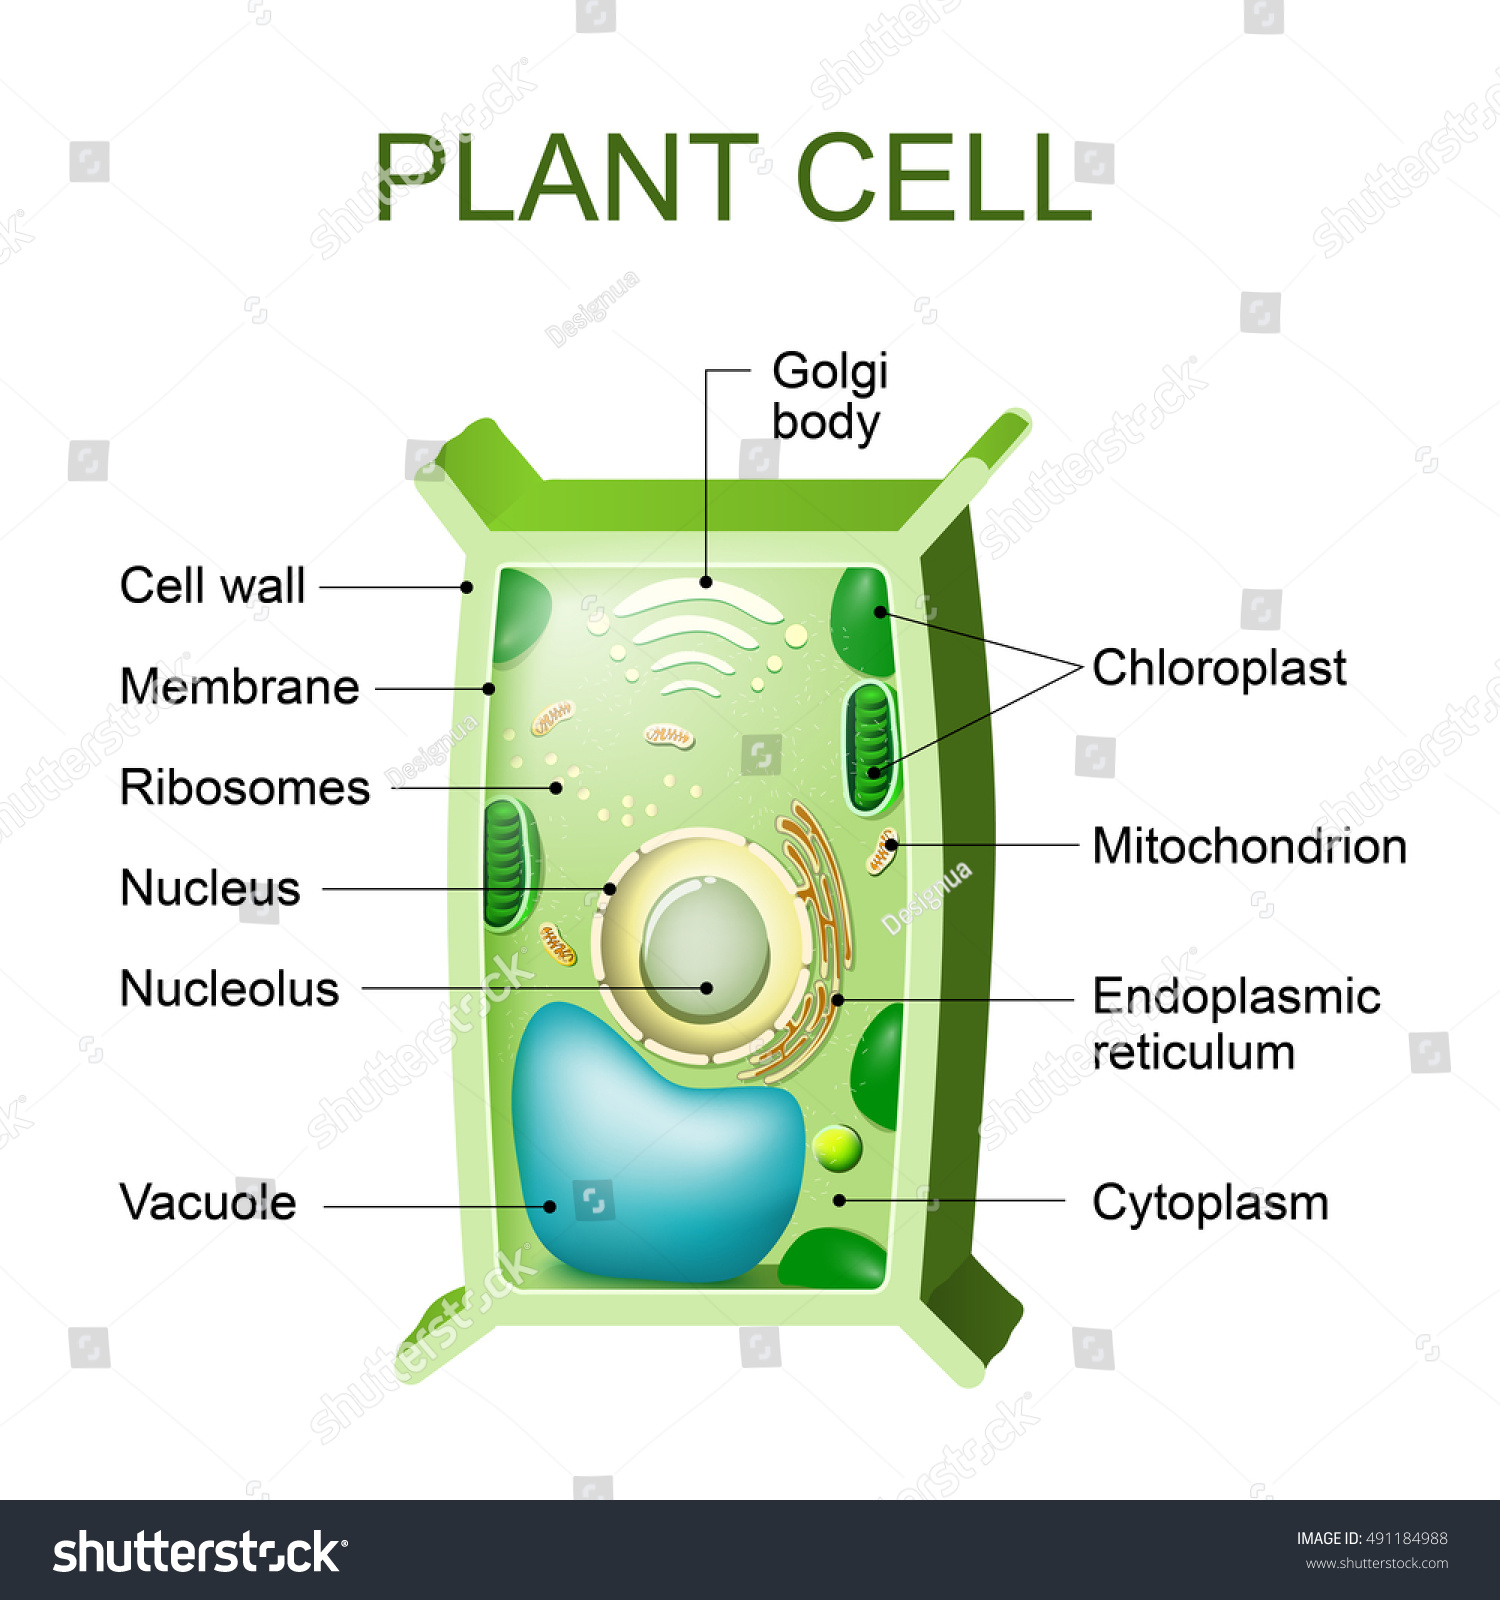 plant pith diagram cross section how to wolf whistle cell anatomy stock illustration